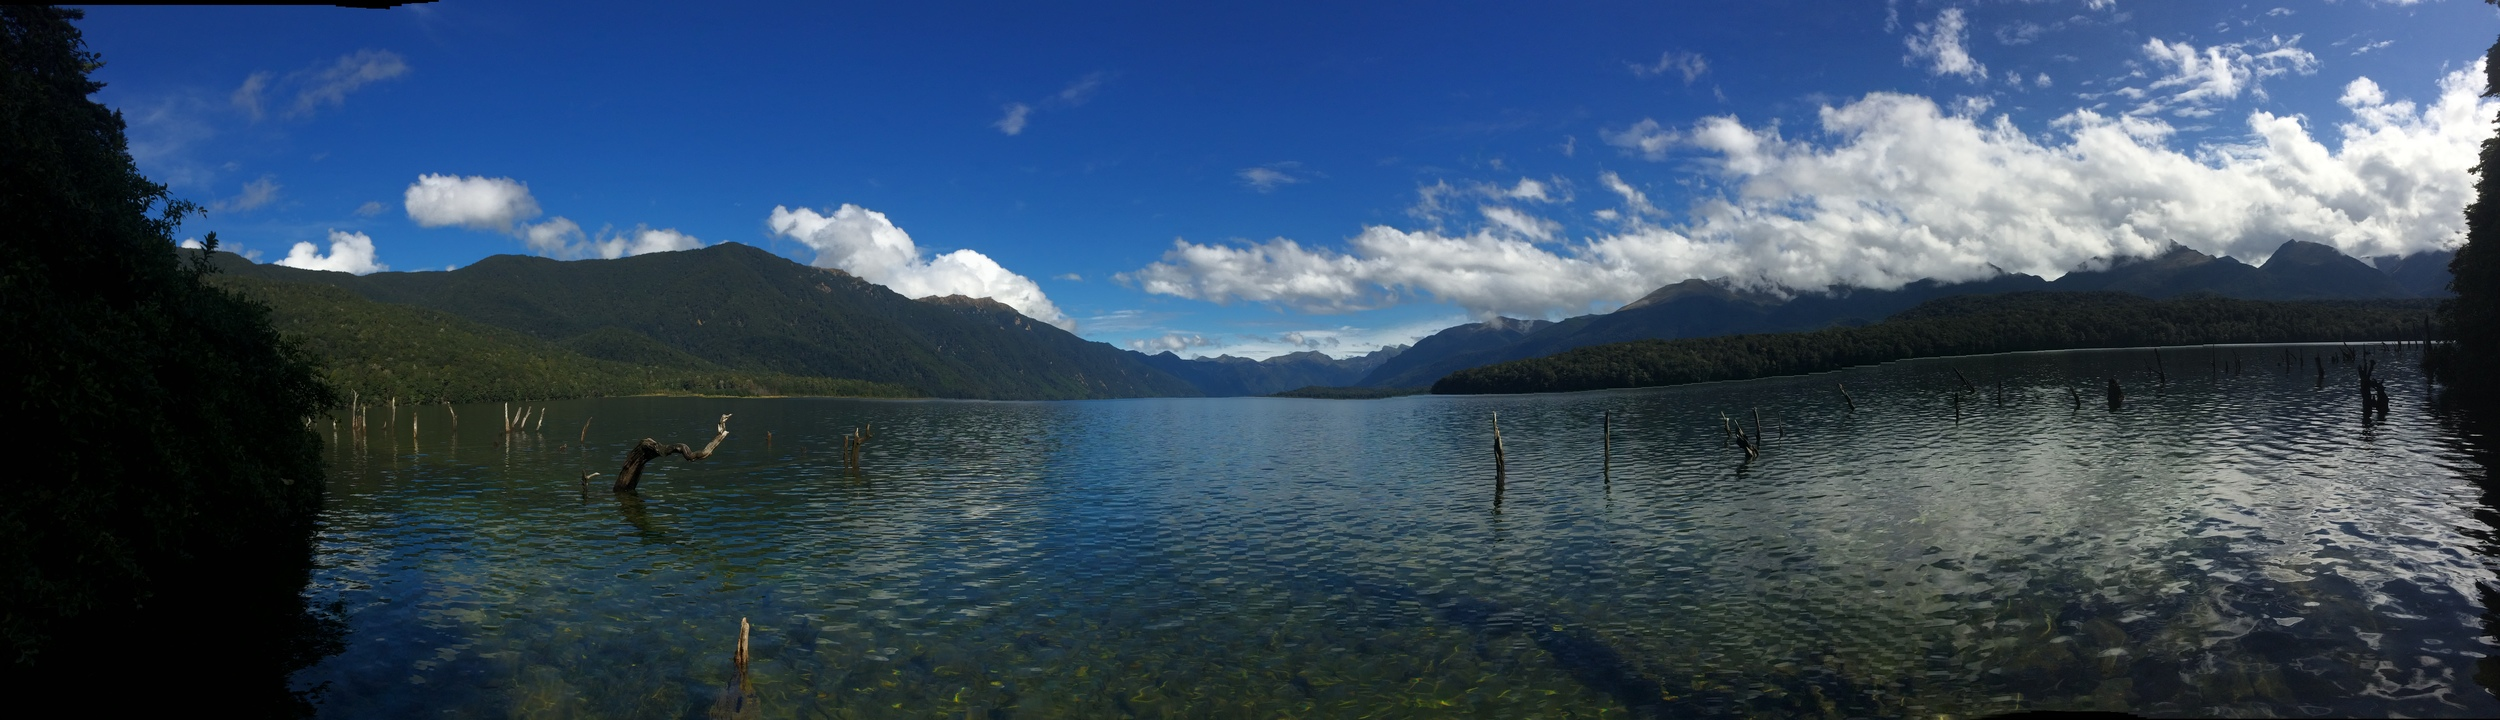 Taking a dip in Lake Monowai